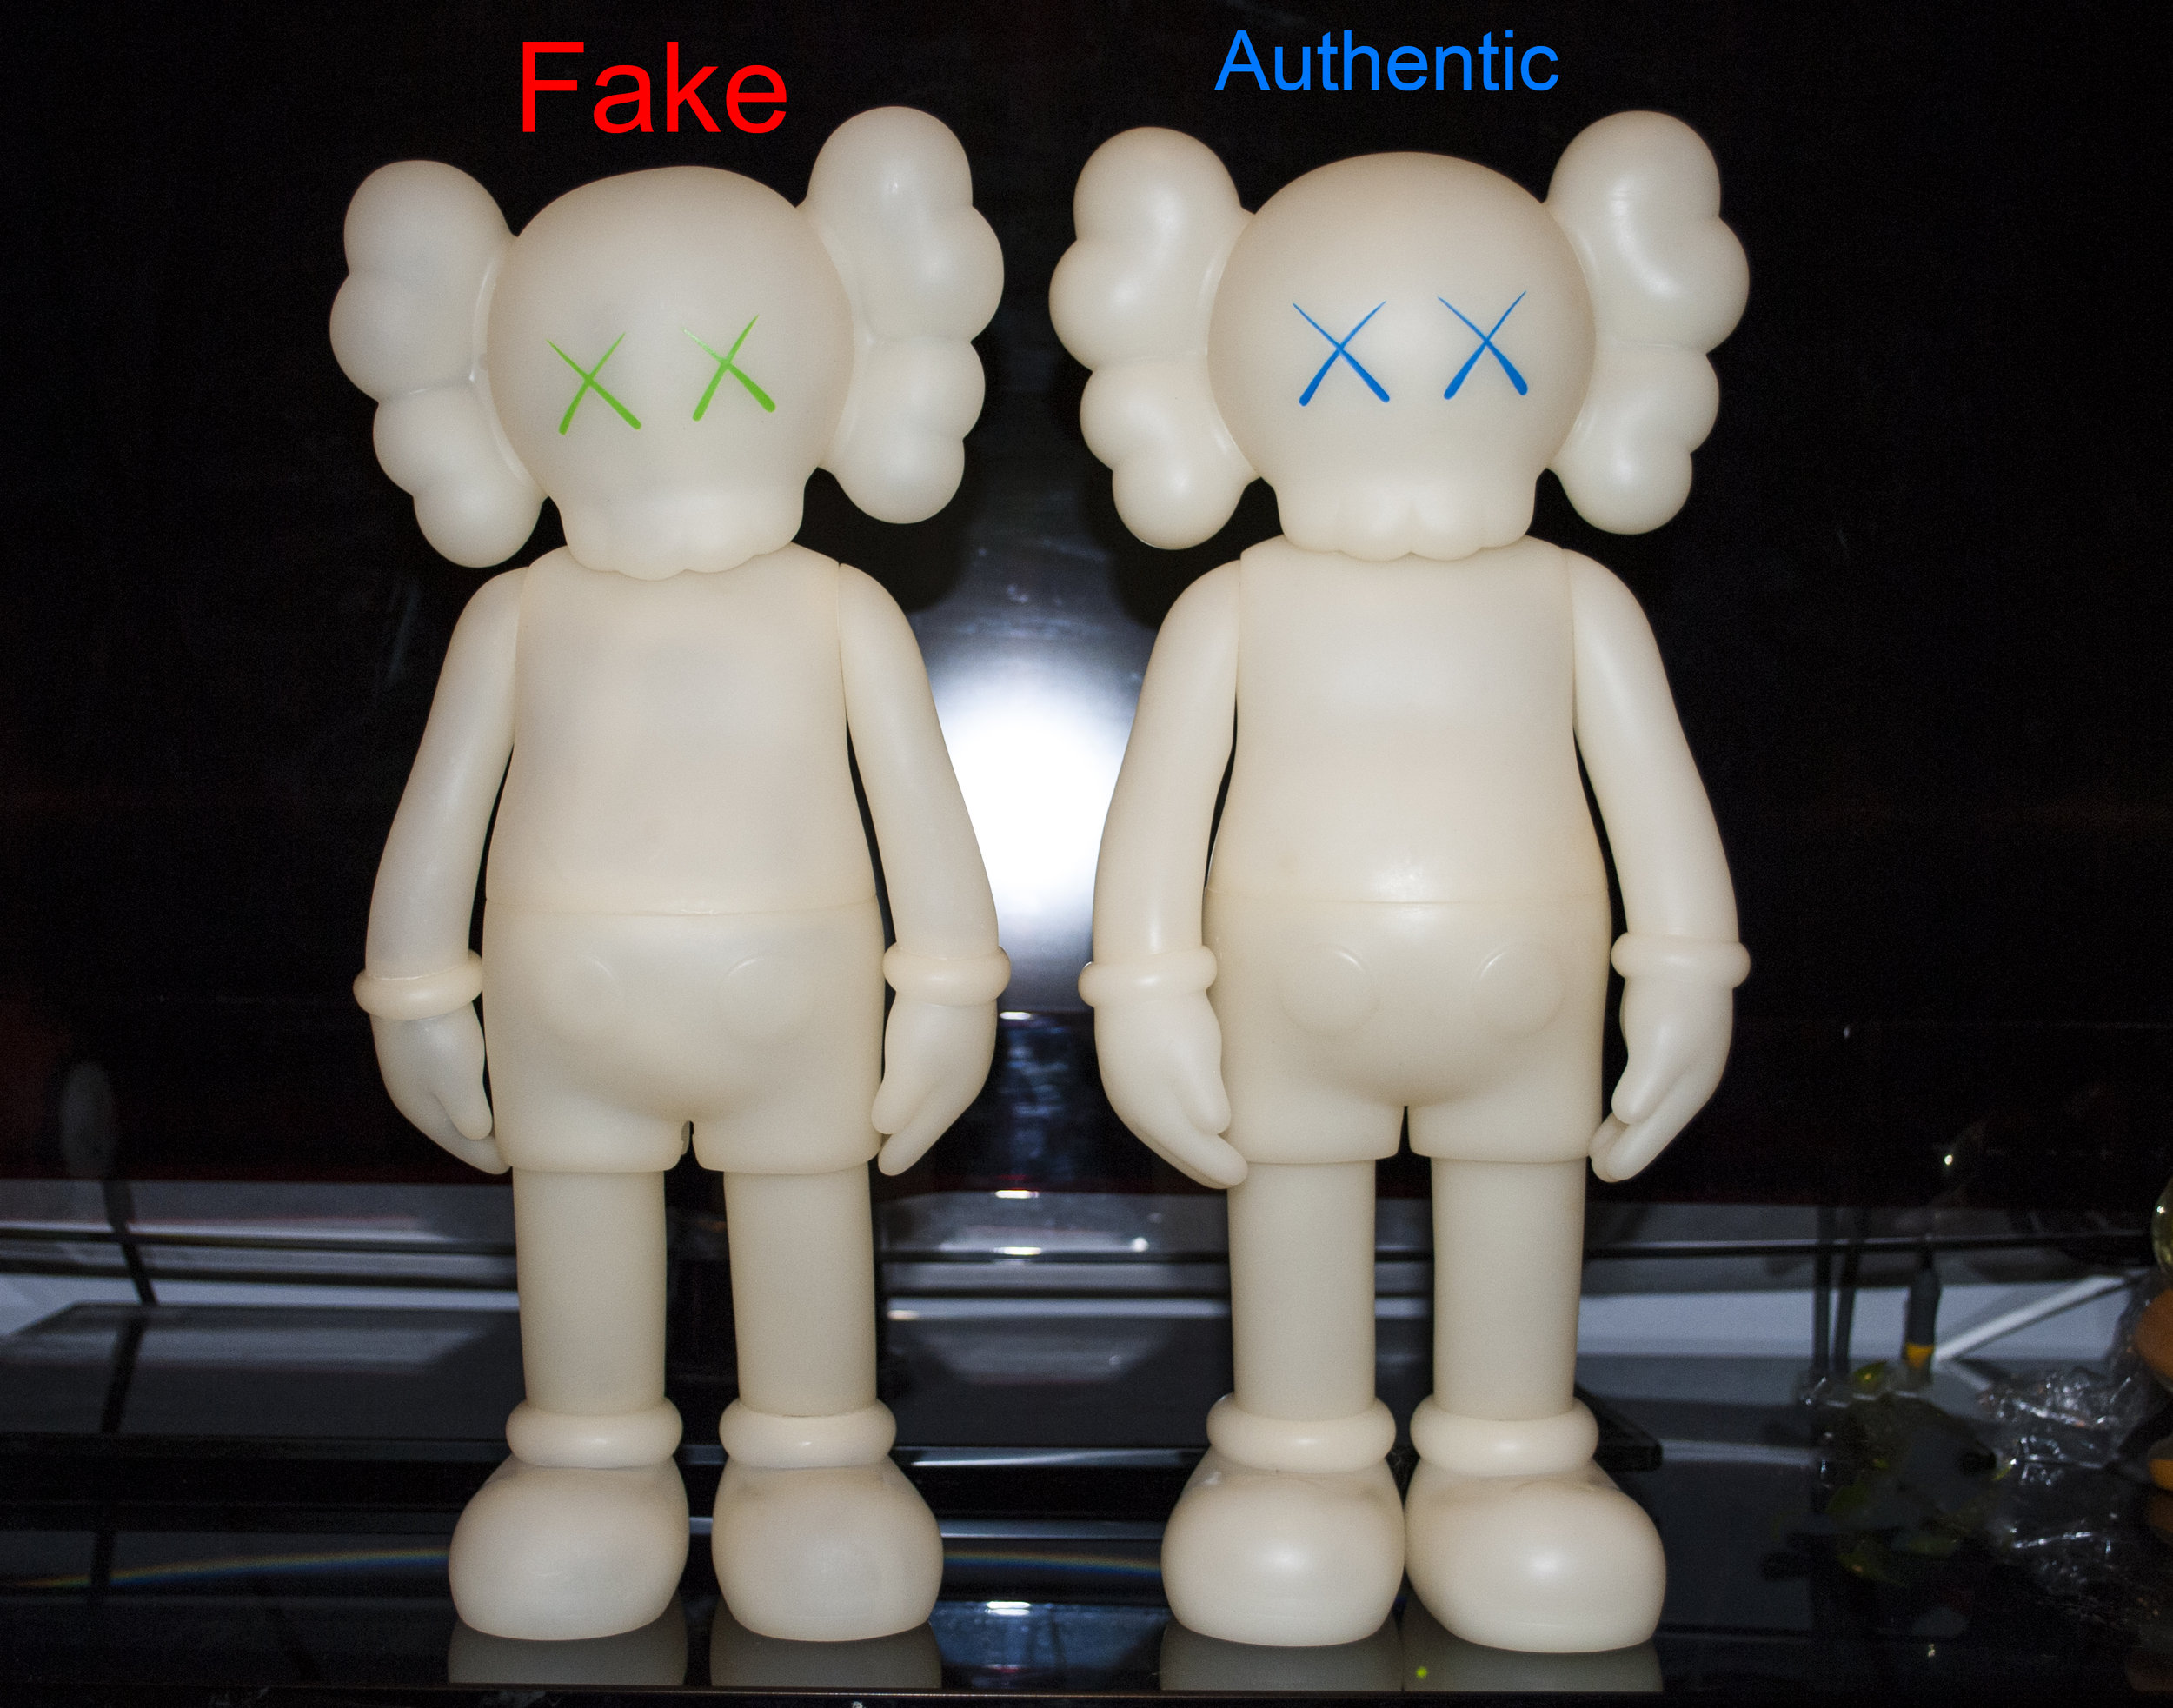 Notice the size. the Fake is slightly smaller and a little crooked. Also the quality of vinyl is slightly transparent compared to the authentic version.